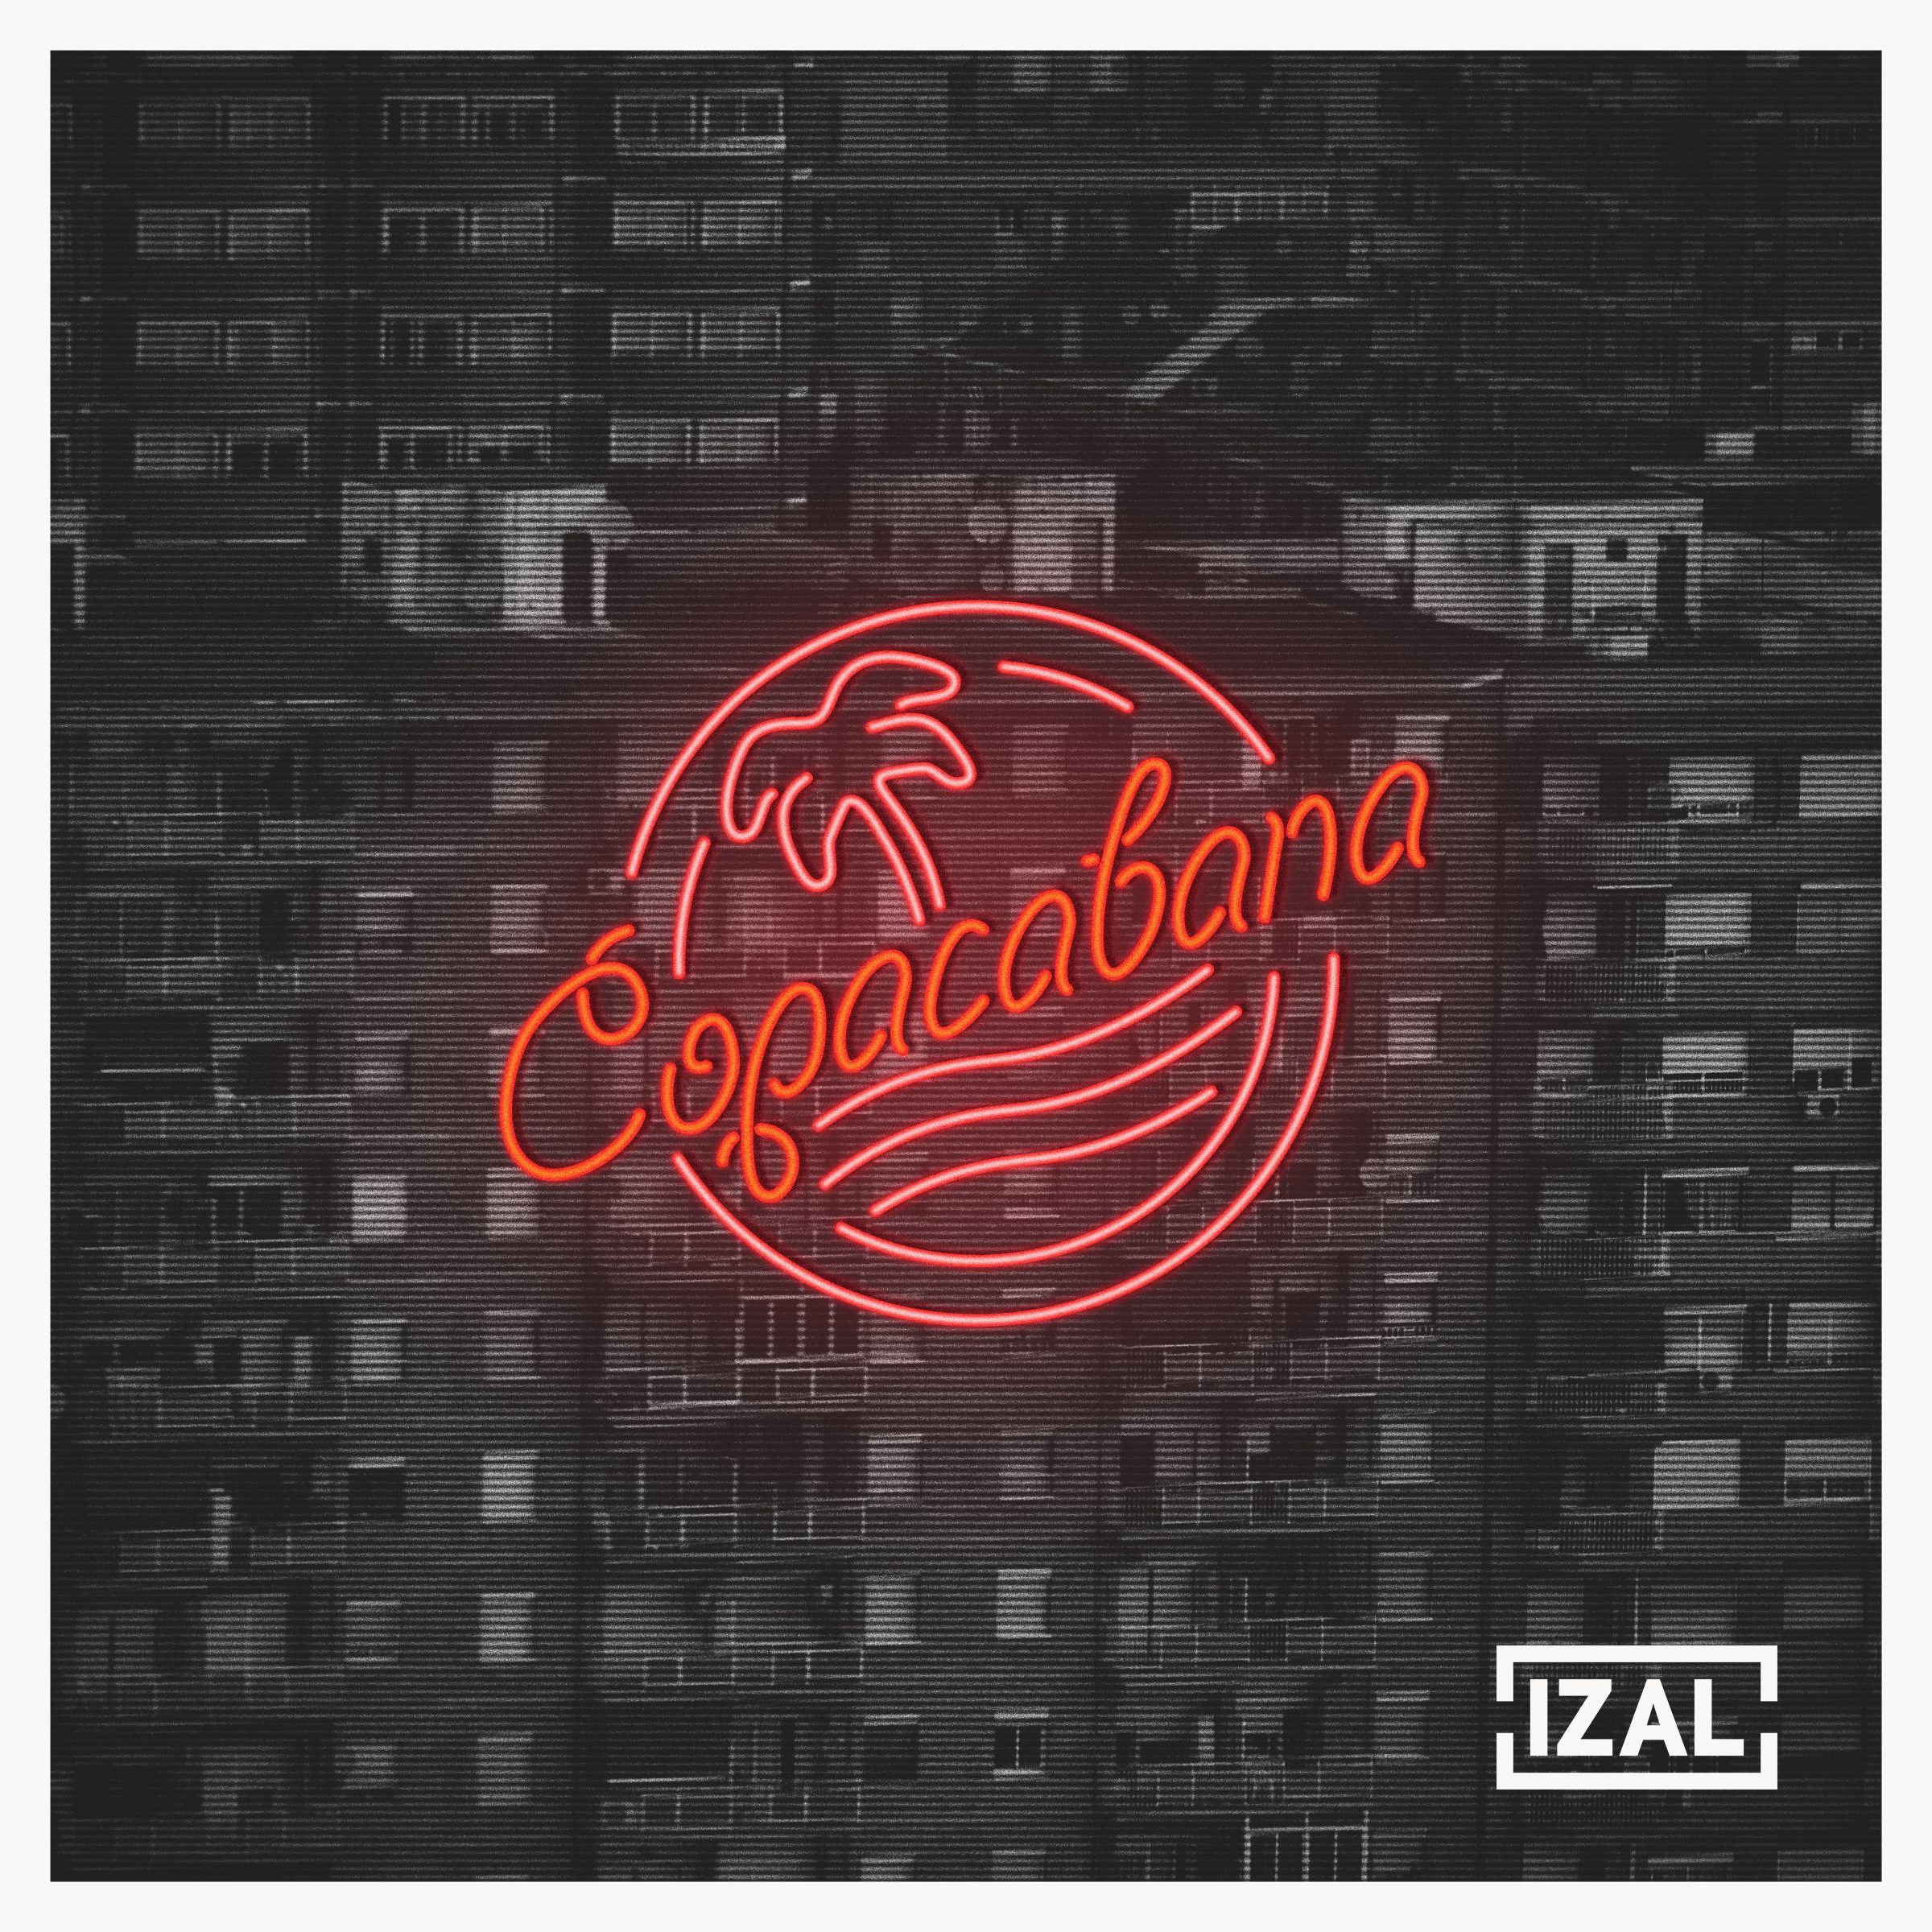 Izal - Copacabana album cover